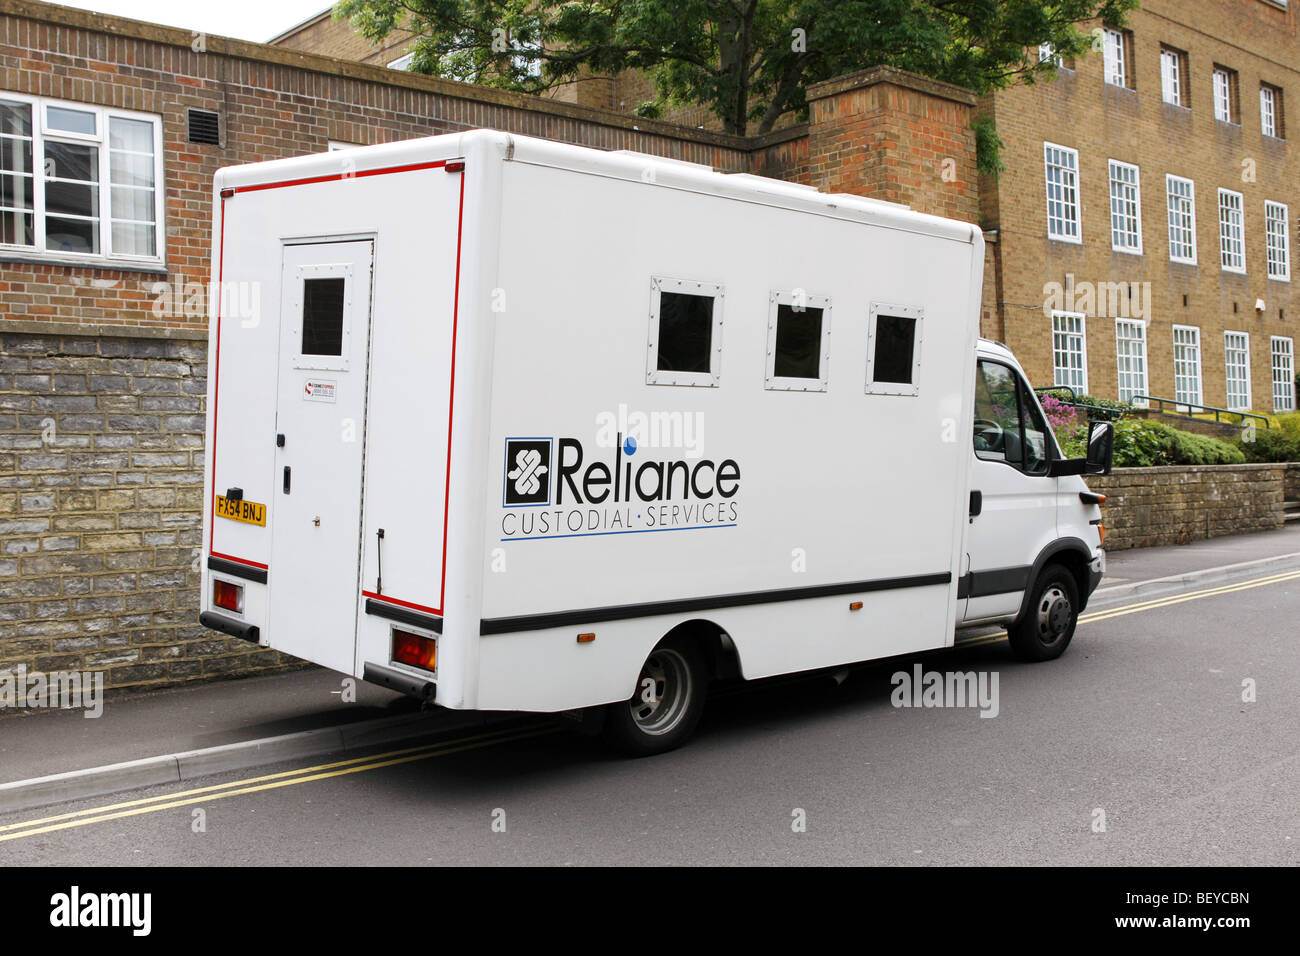 A Prisoner transfer van operated by Reliance Custodial Services - Stock Image